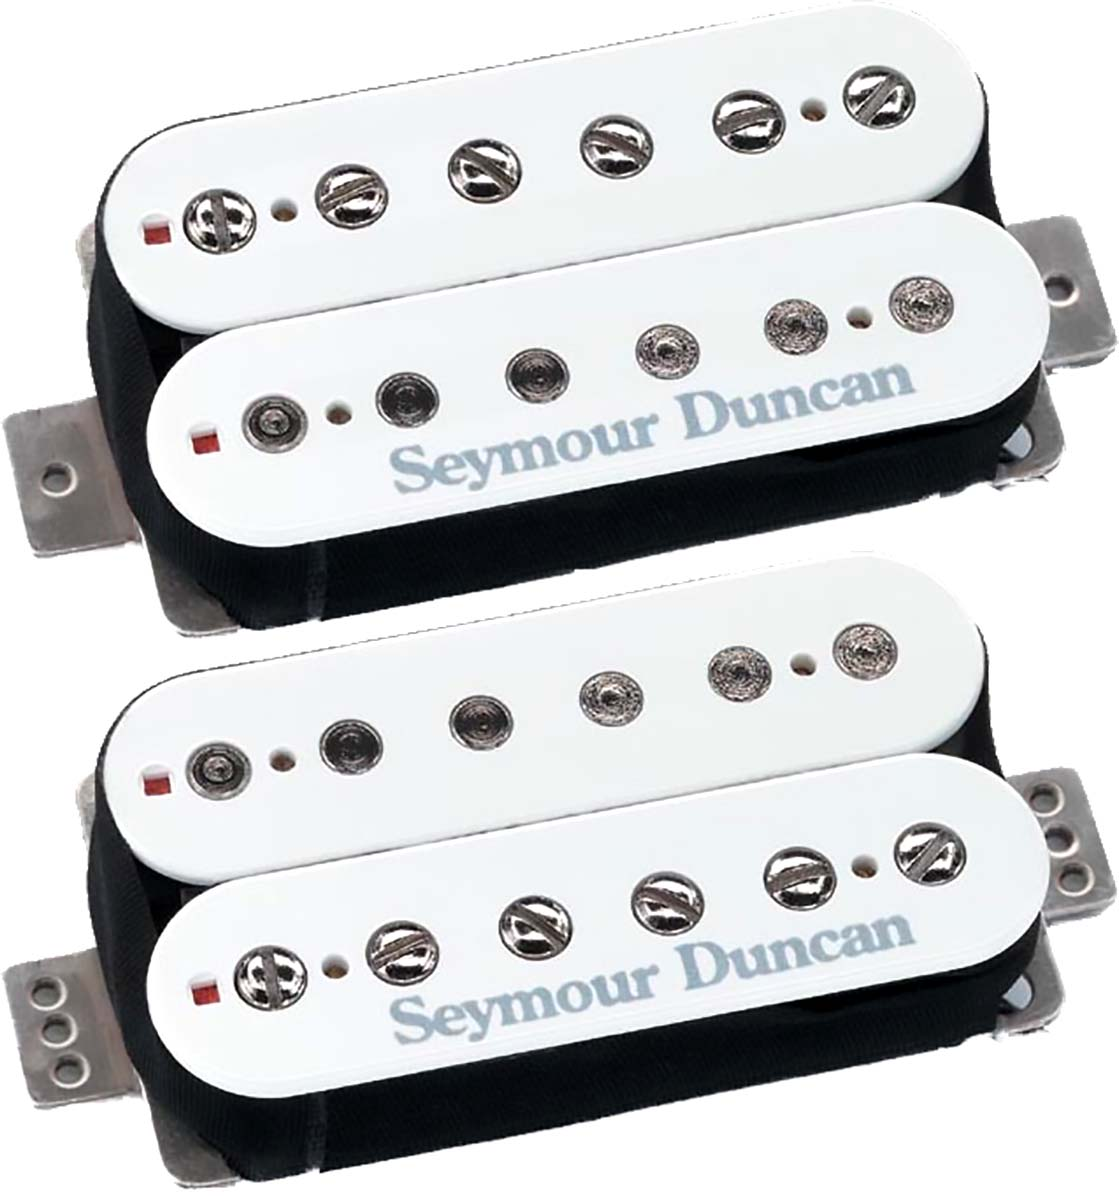 Details about Seymour Duncan F-Spaced Hot Rodded Humbucker Set: SH-2n +  TB-4 JB Bridge, White